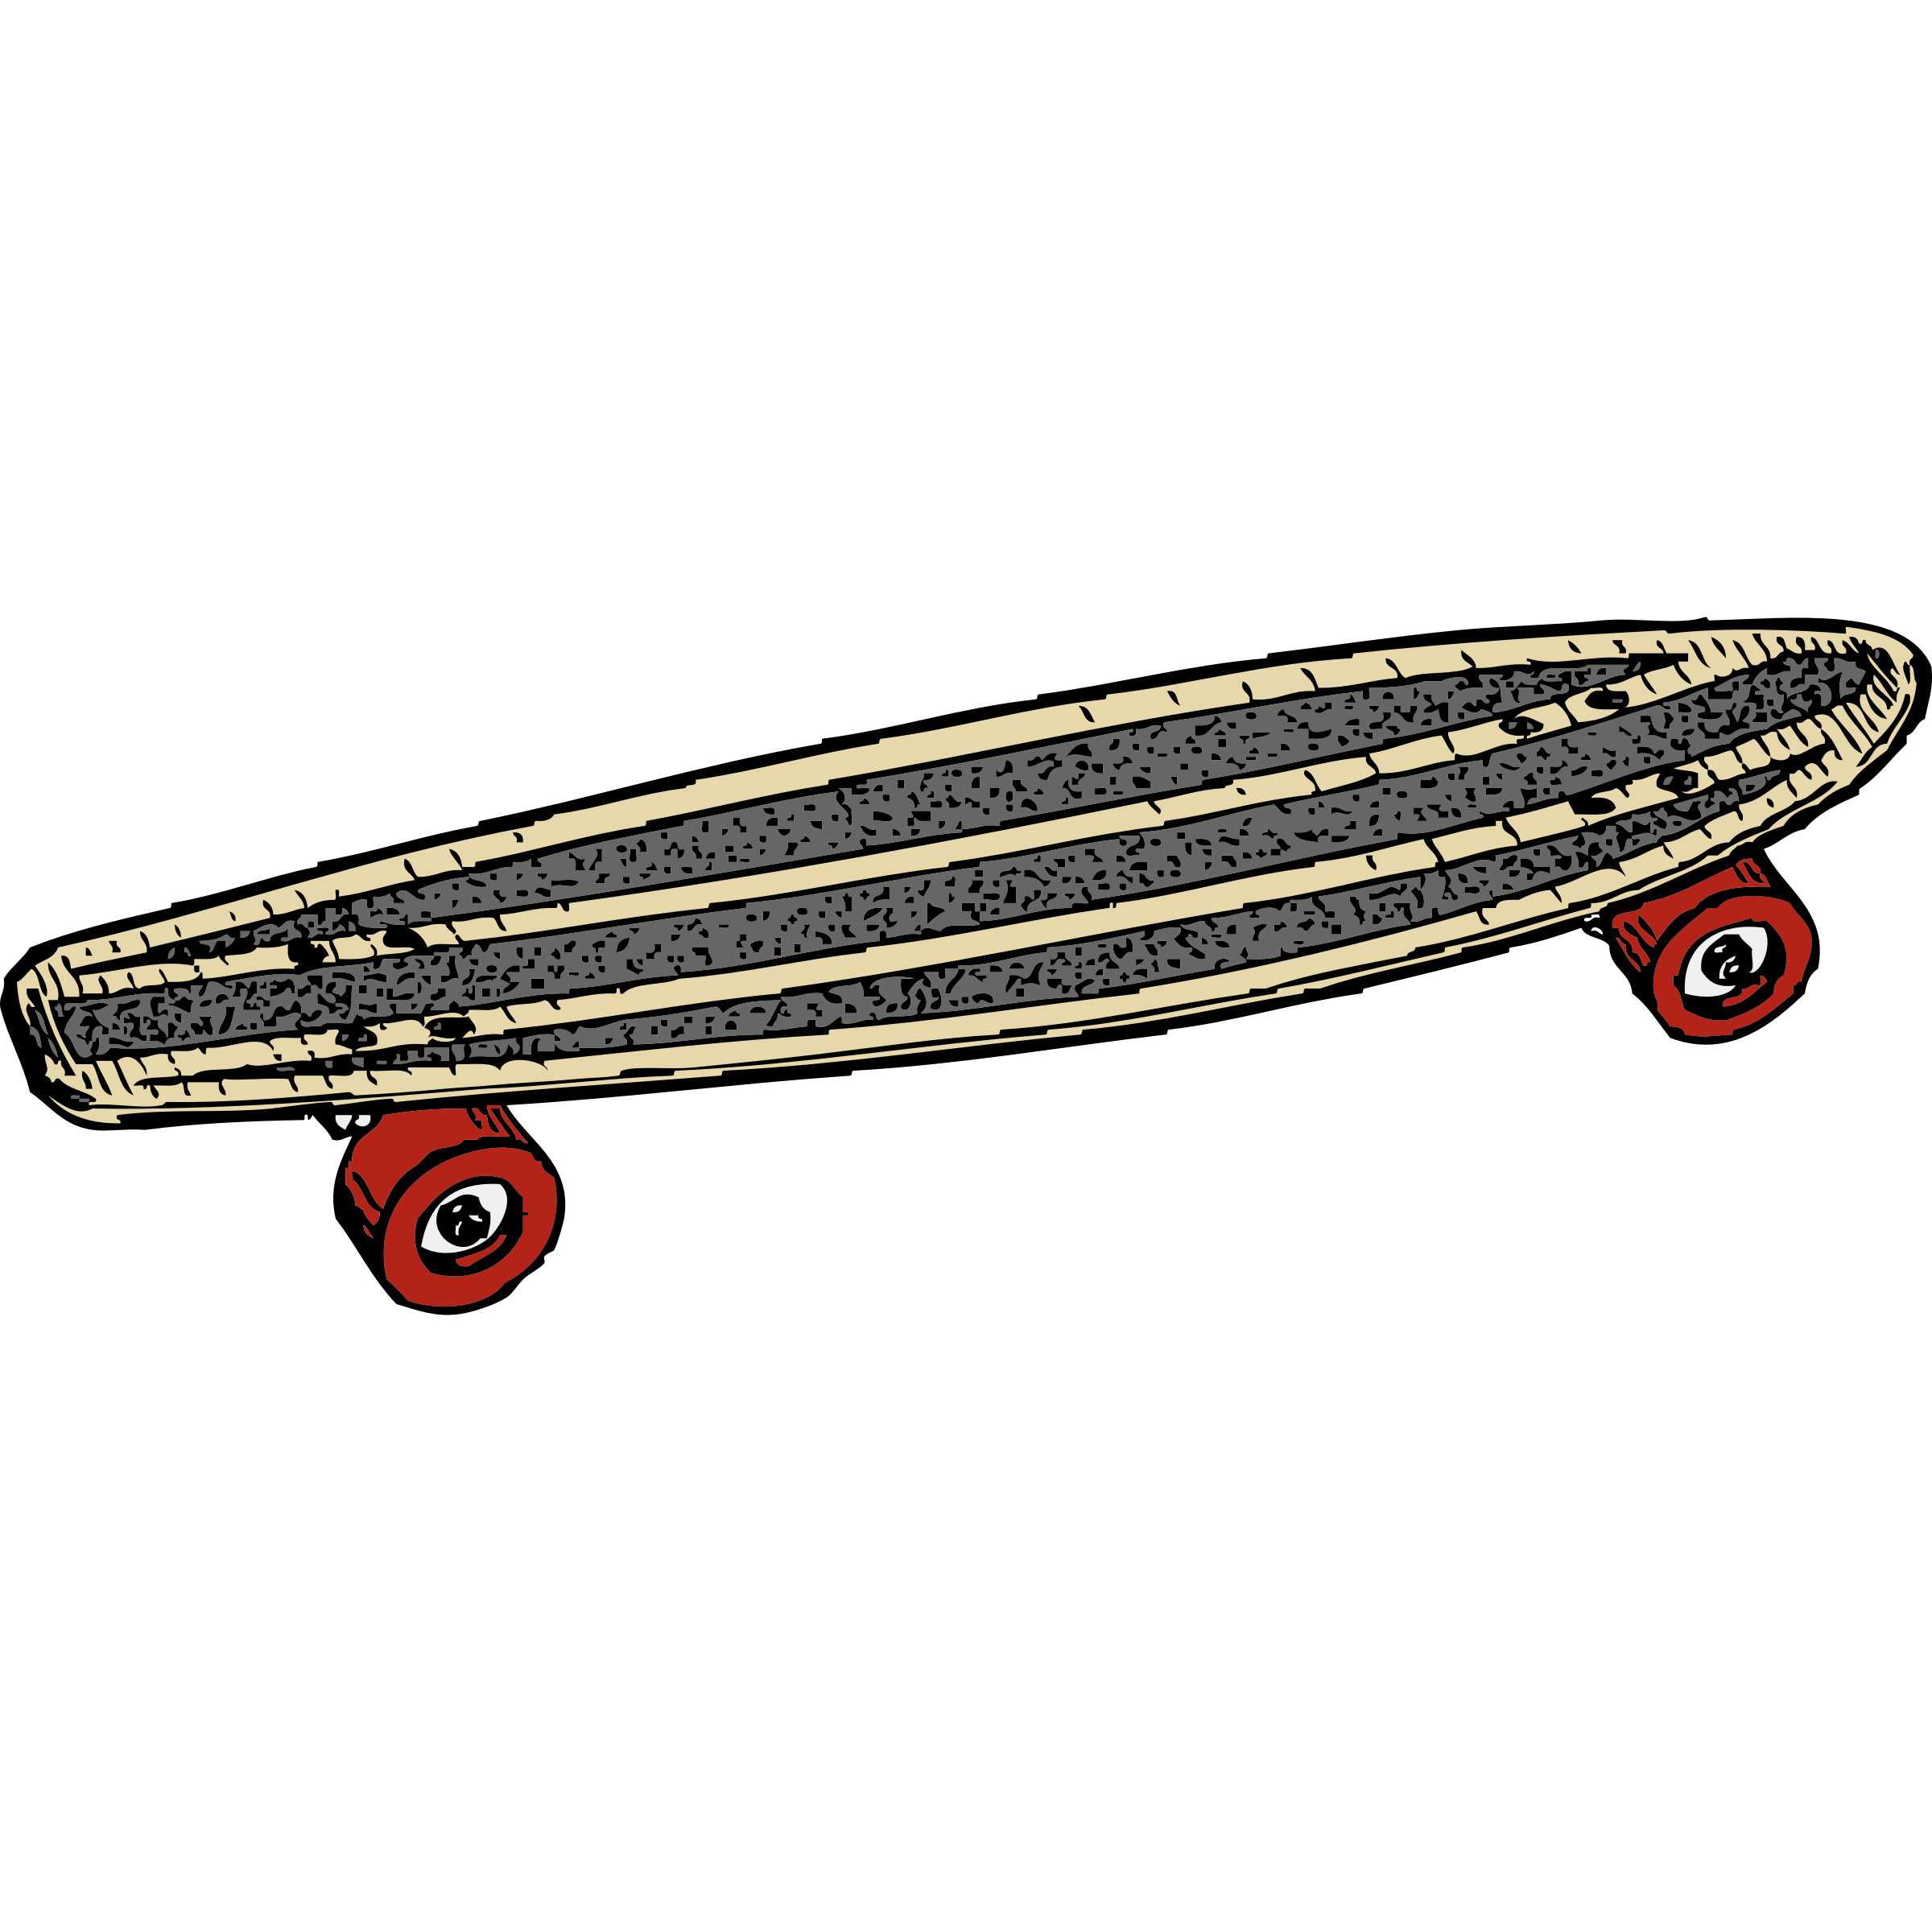 Skateboard clipart transparent Skateboard Clipartix image concentrate skateboarding